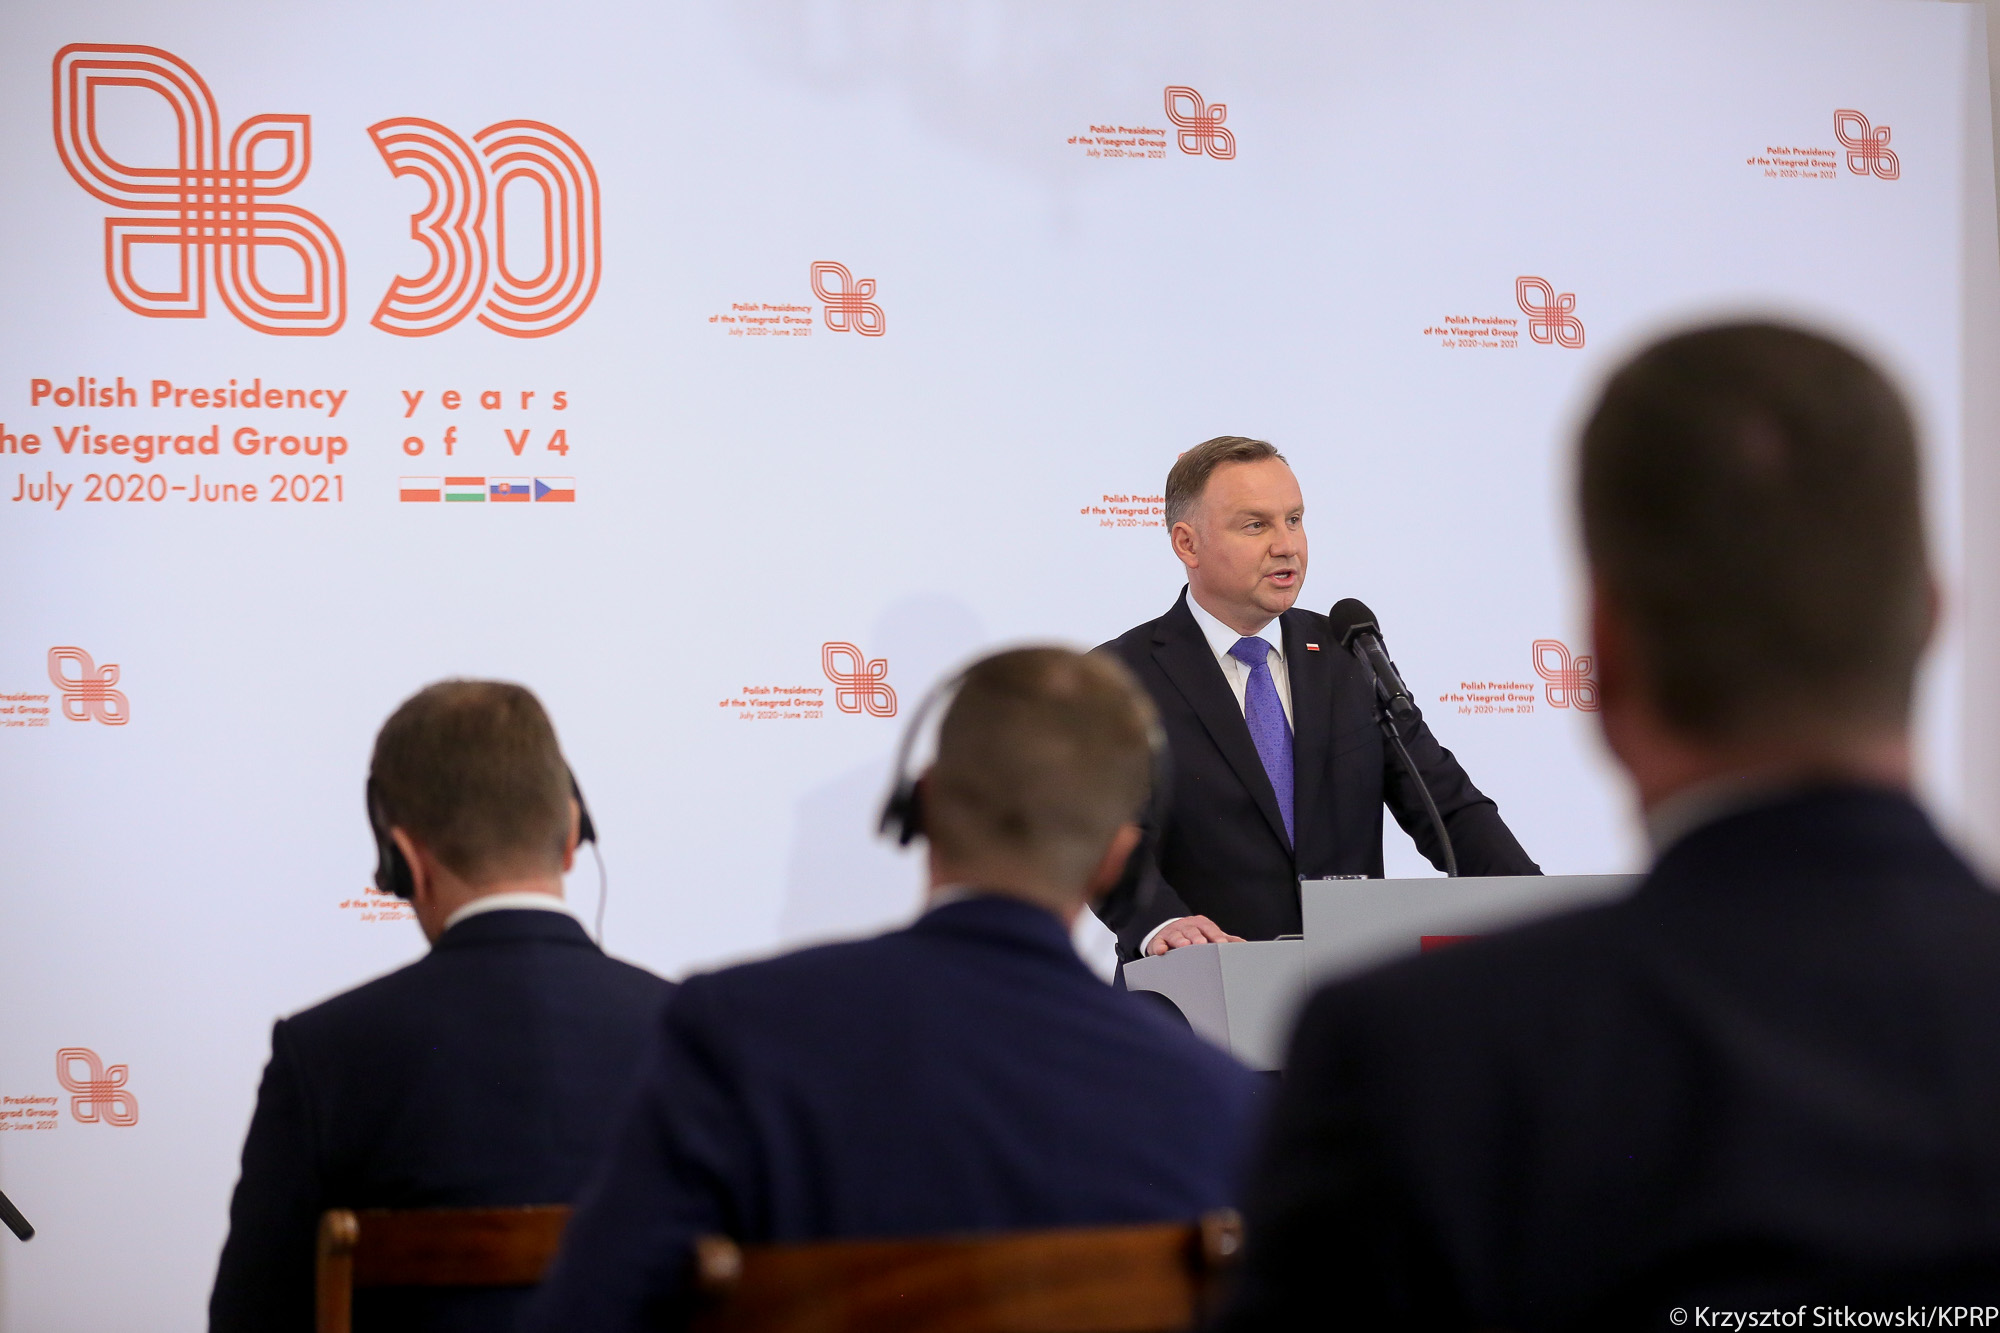 WI Daily News – Polish President at the Visegrad Group Summit